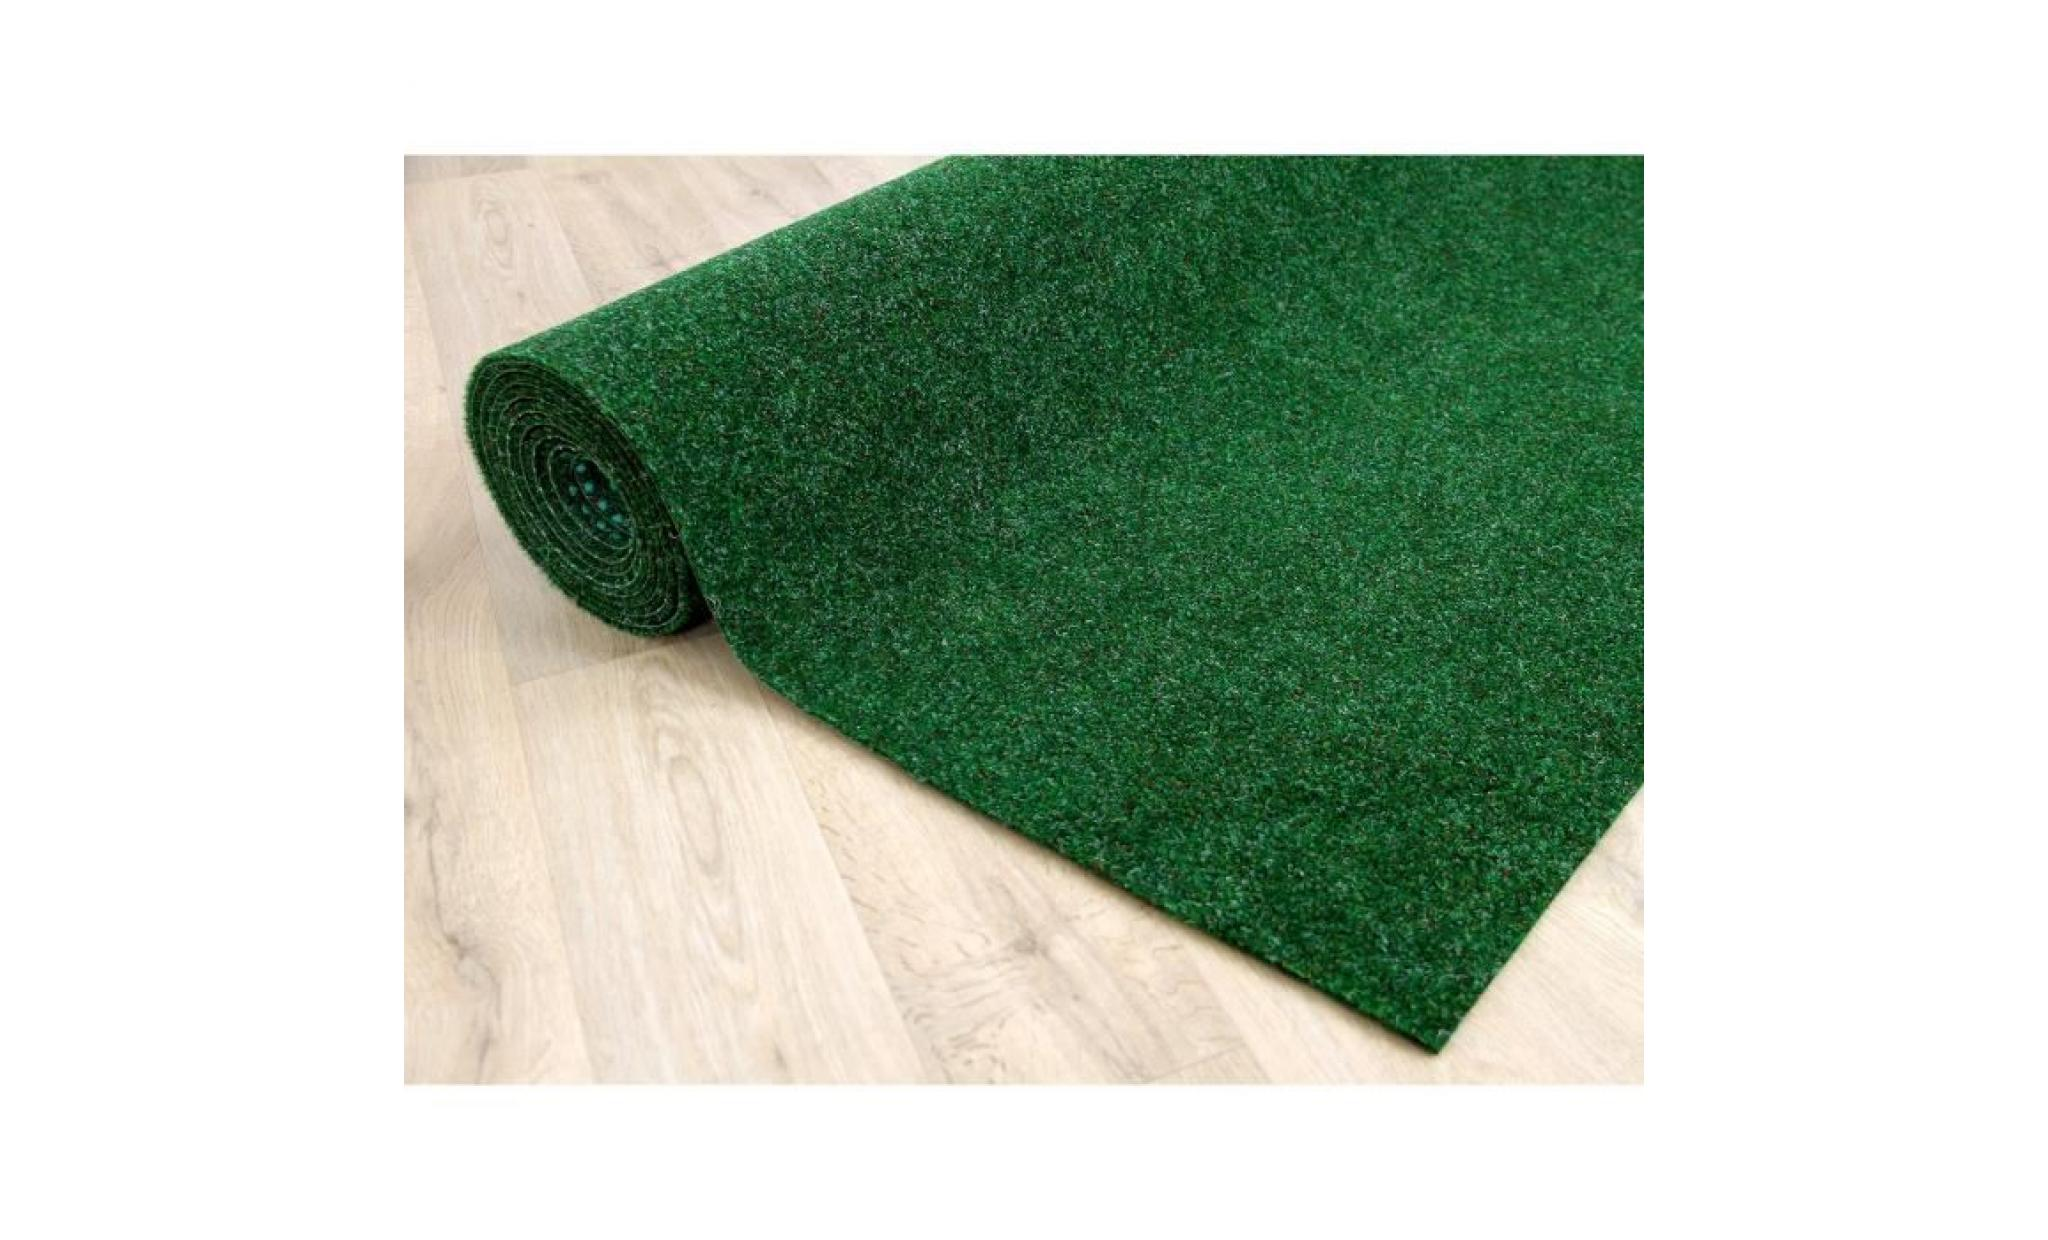 kingston   tapis type gazon artificiel – pour jardin, terrasse, balcon   anthracite [200x250 cm]